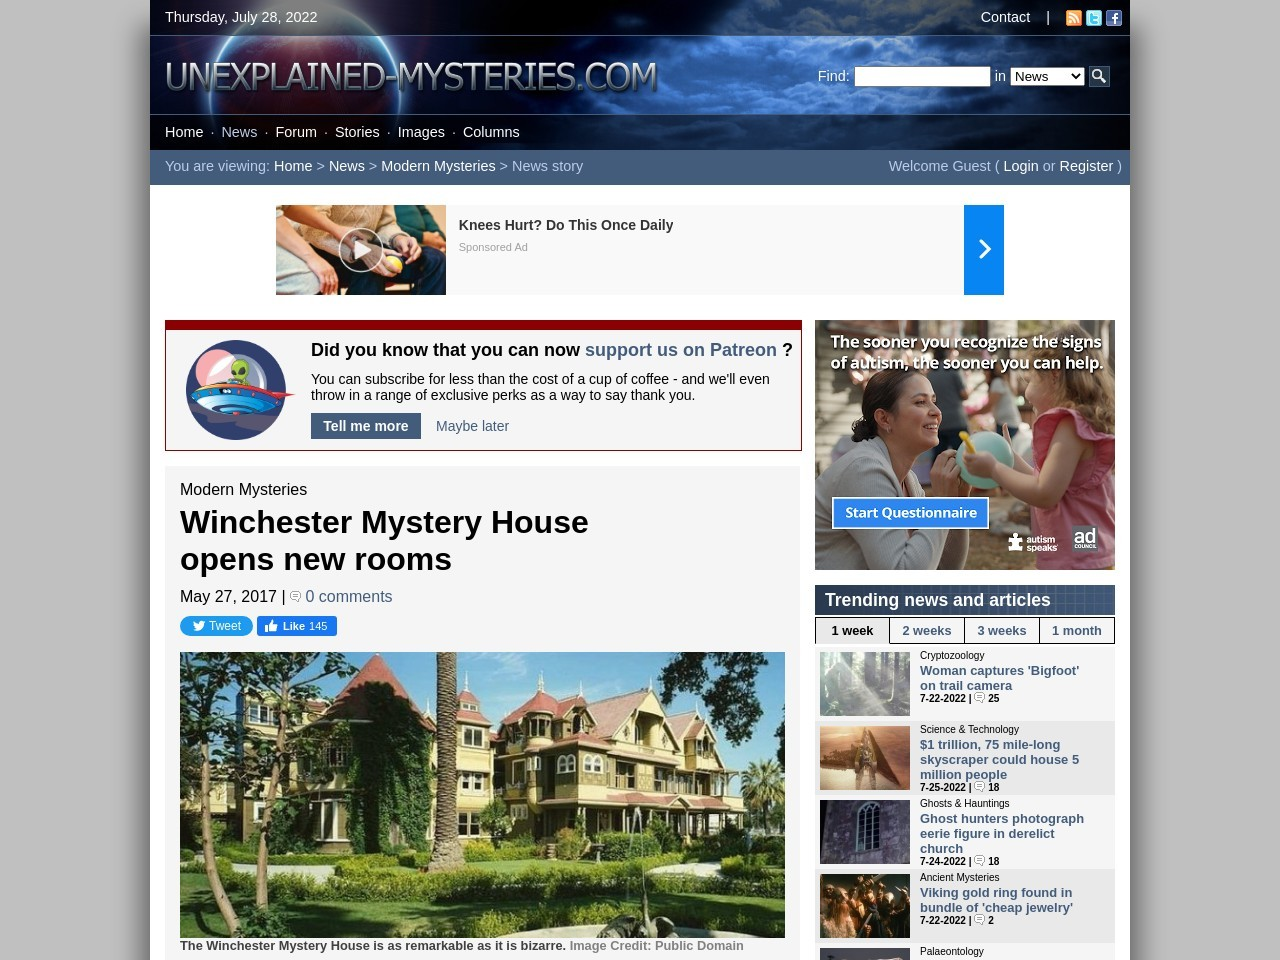 Winchester Mystery House opens new rooms